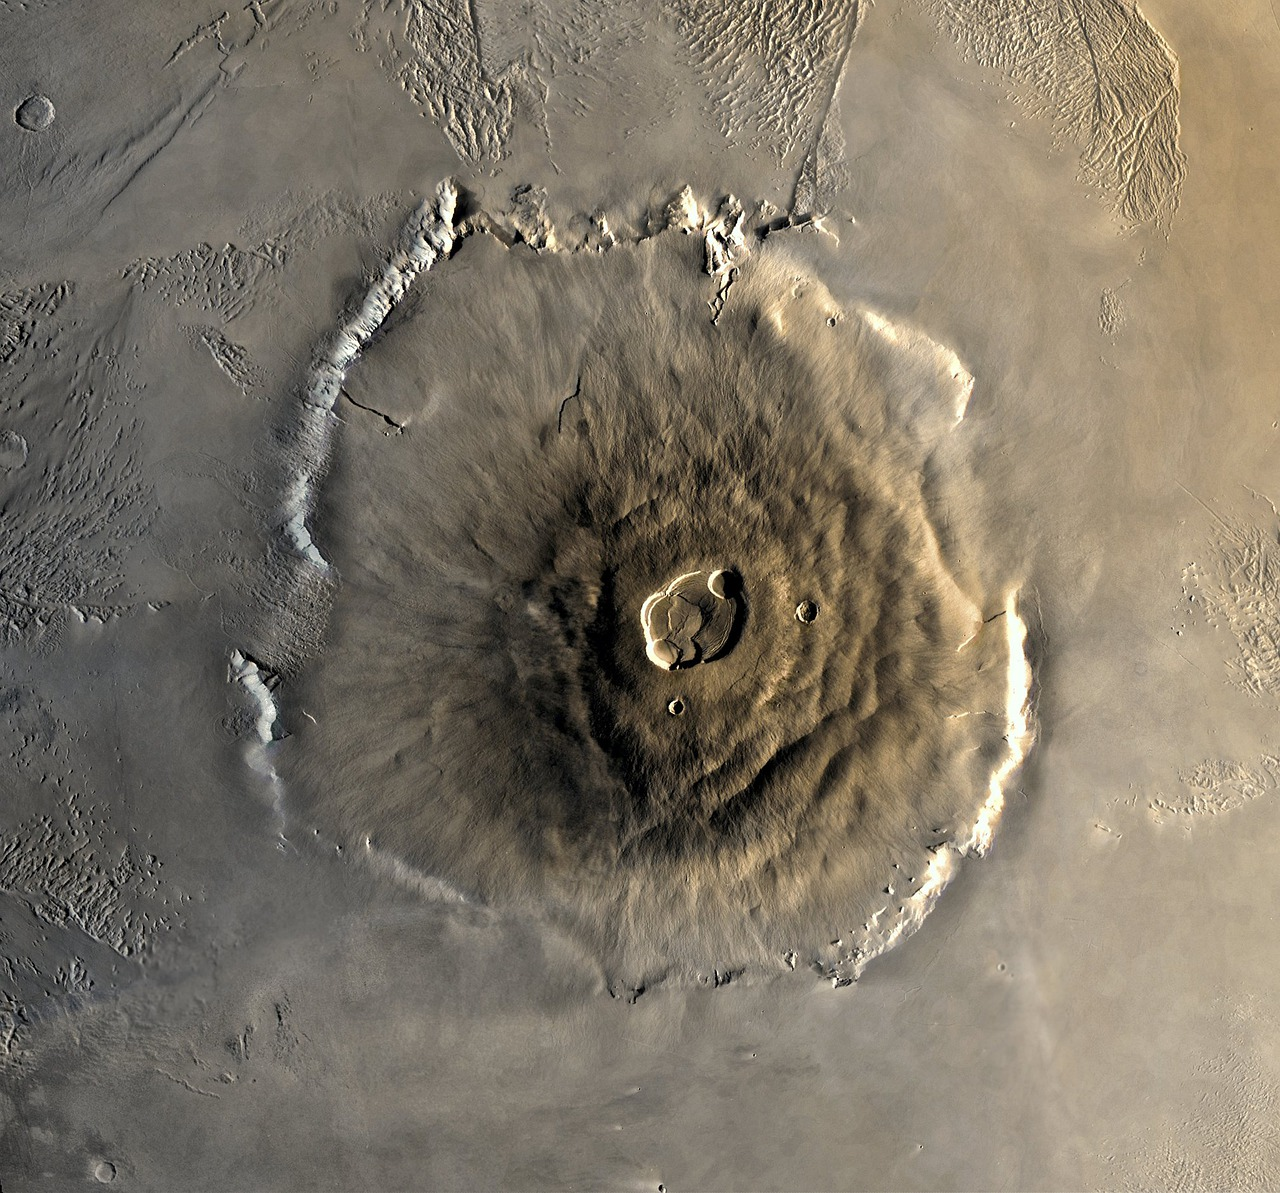 The height of Mount Olympus on Mars is 25 km (15 miles).